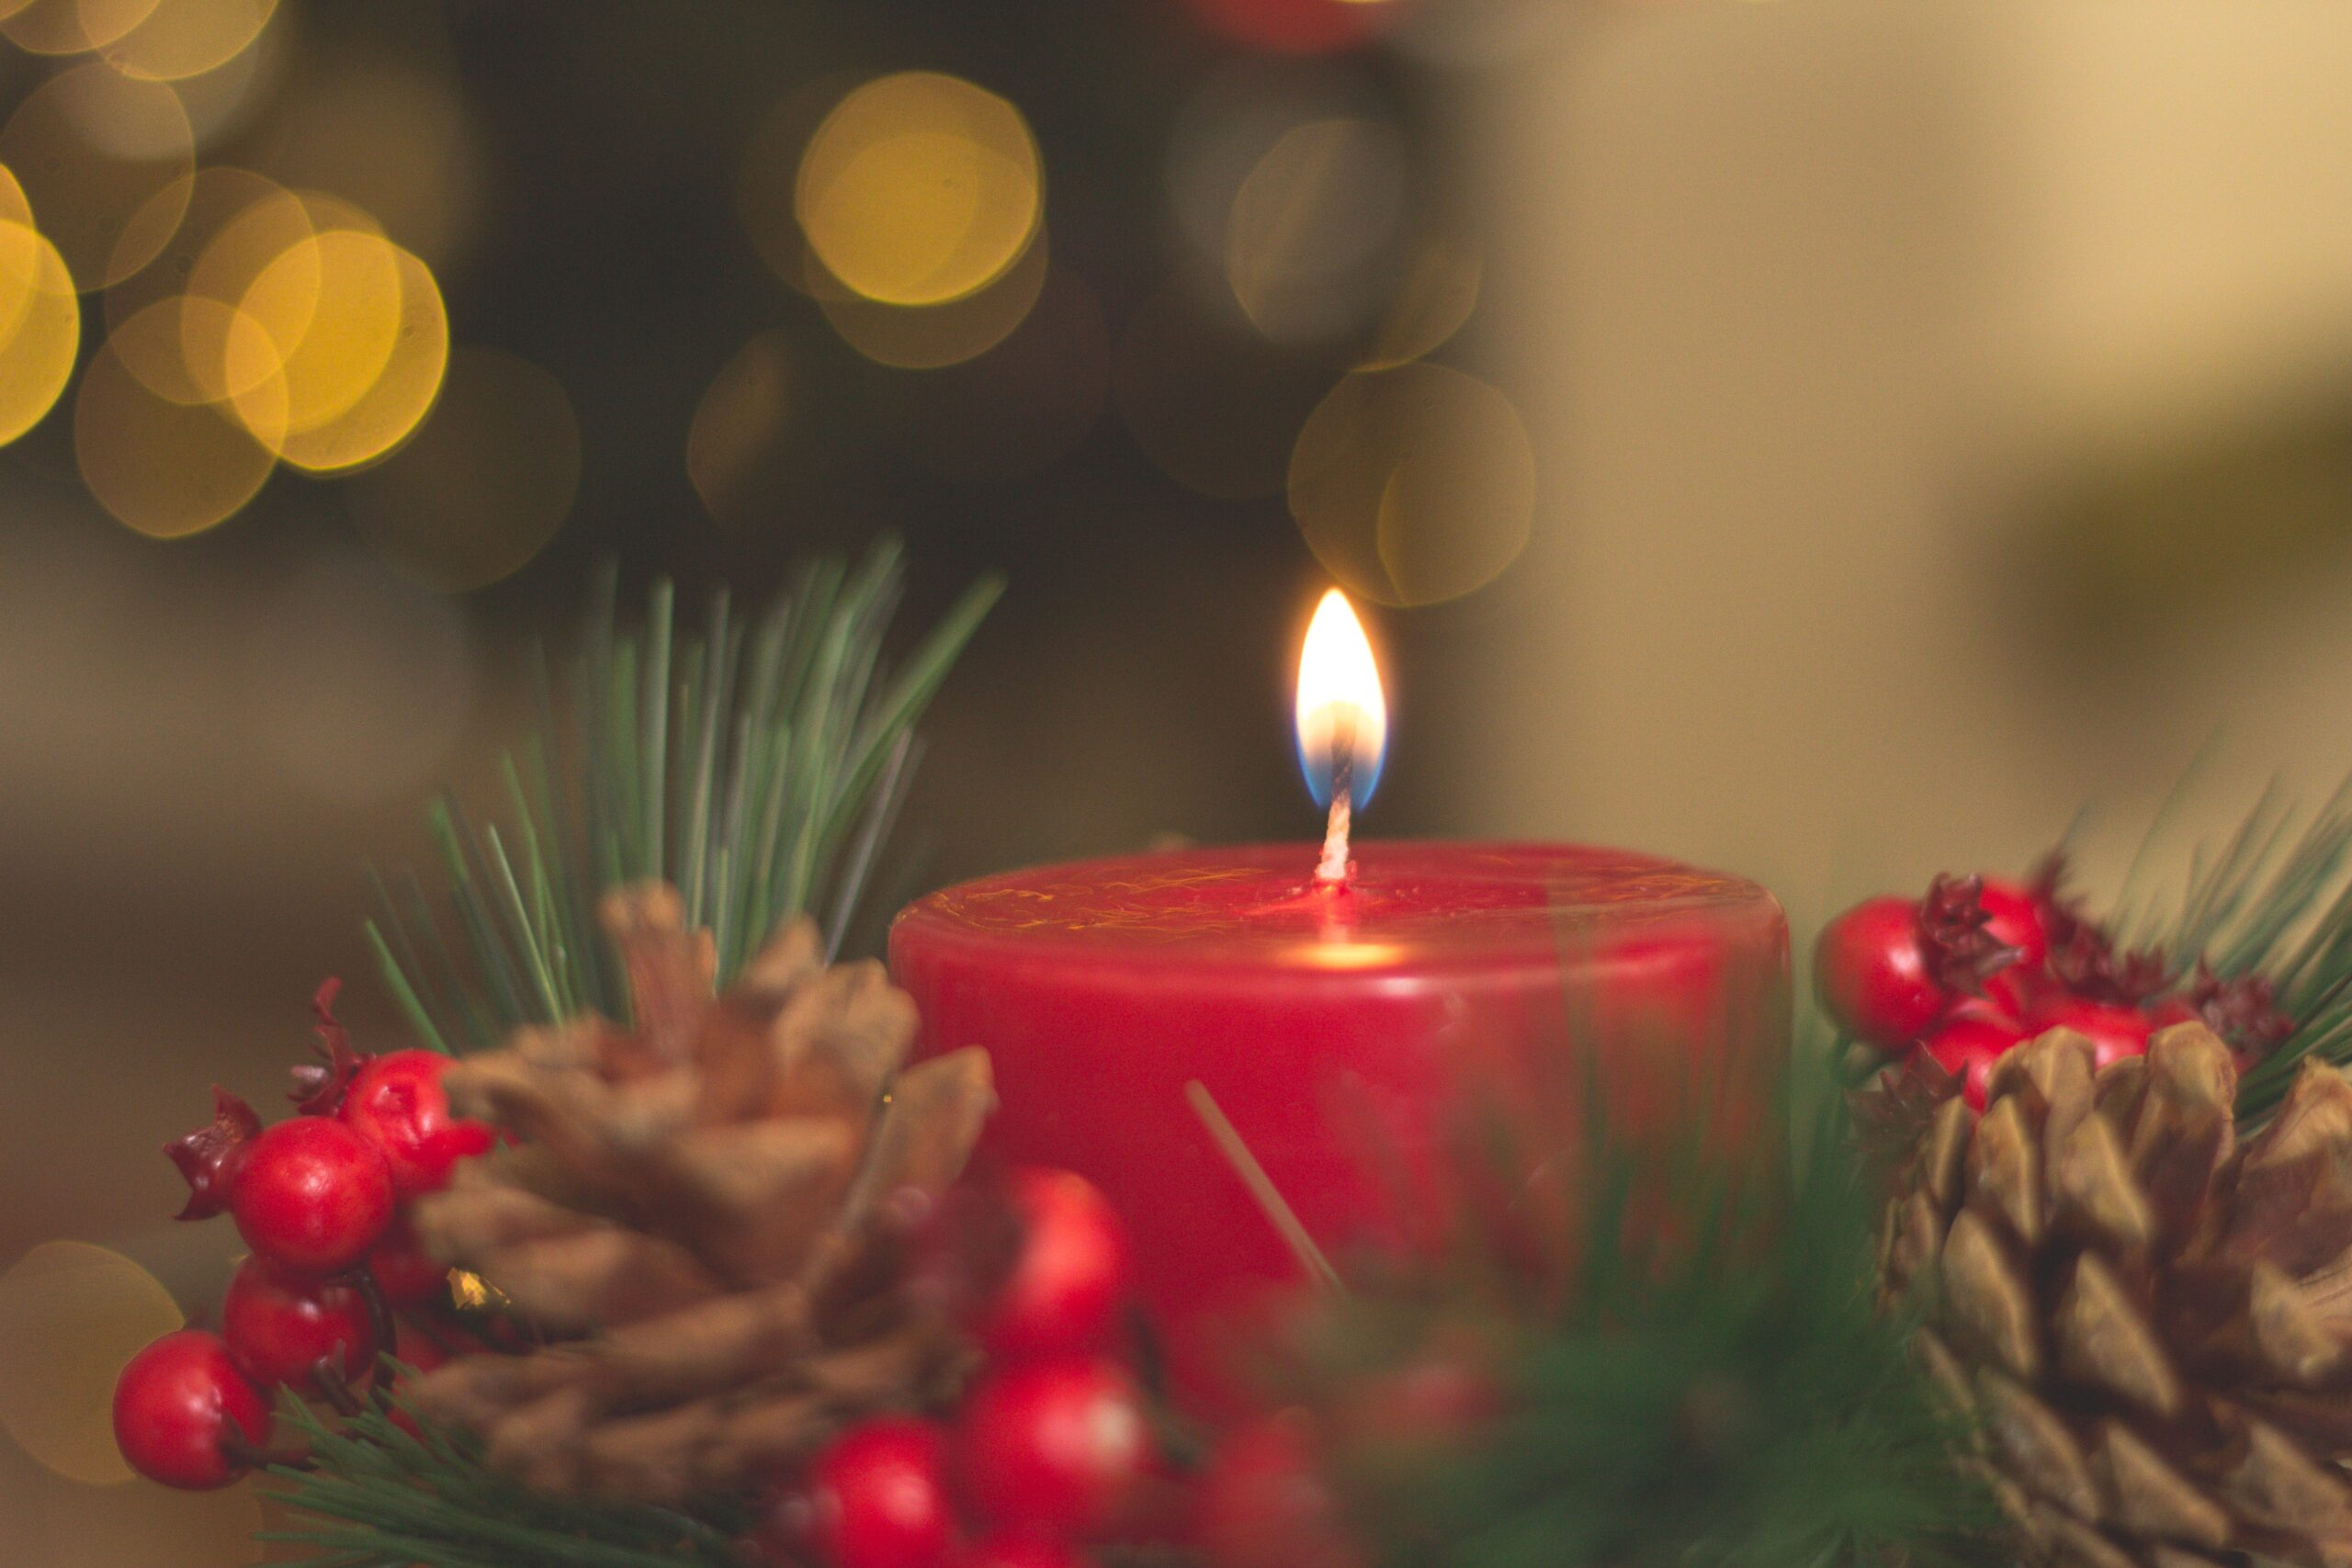 holiday safety, fire prevention, candle, holiday candle, fire safety